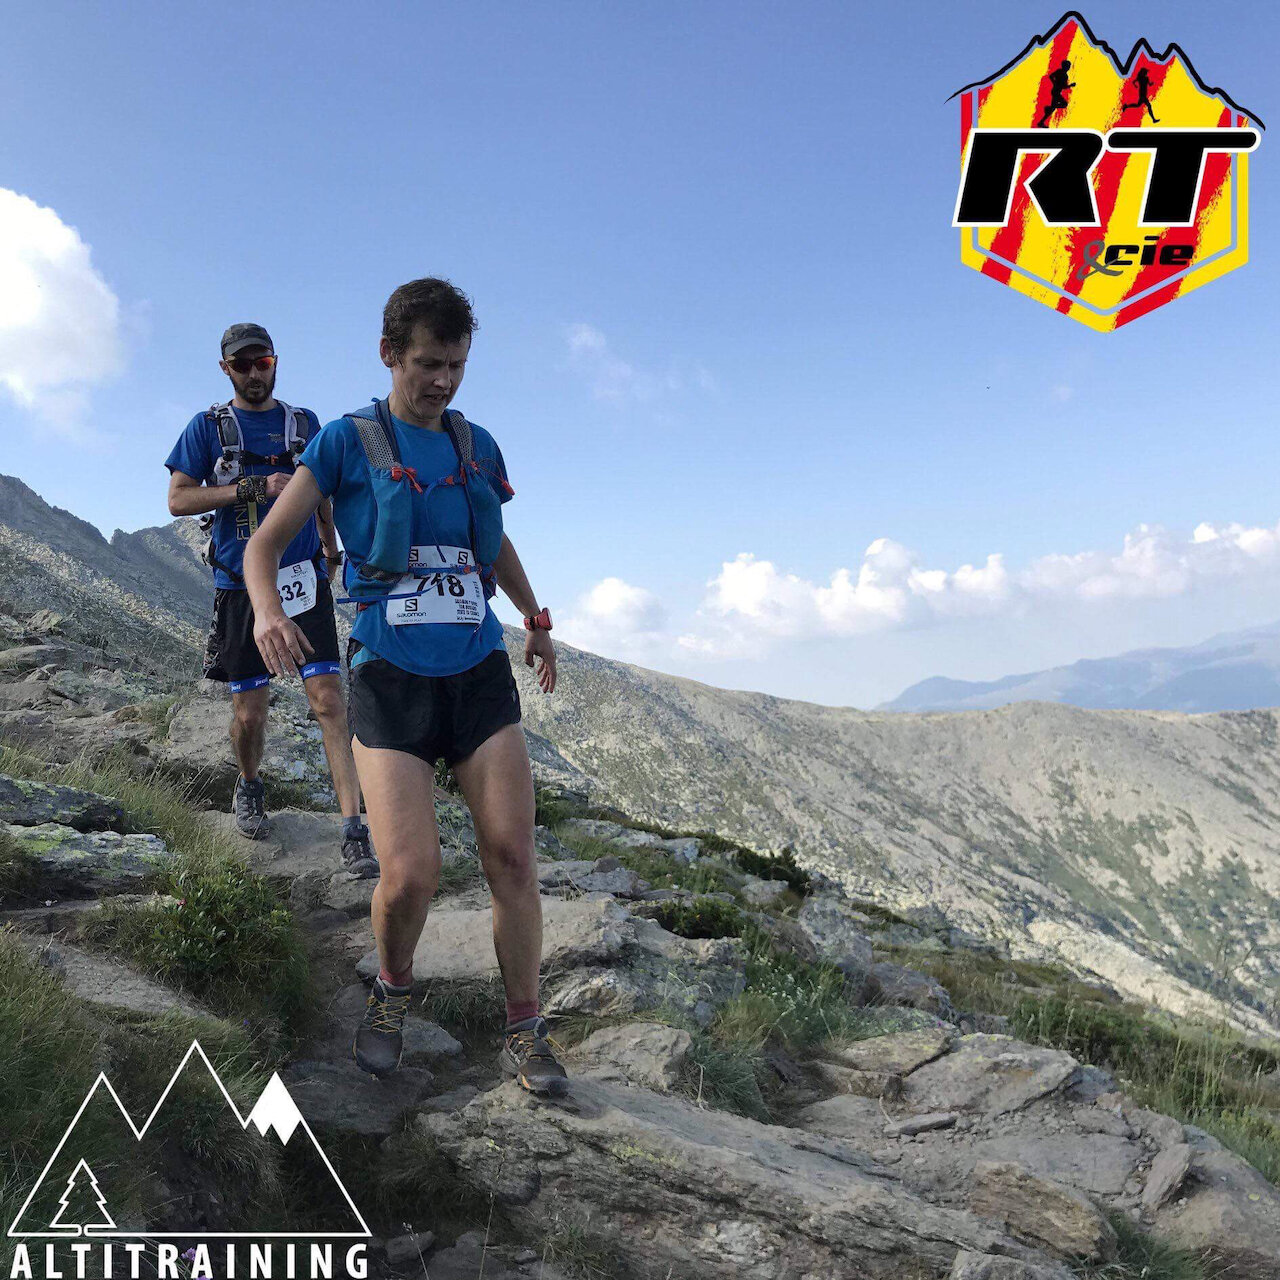 Focussing hard on the descent at the 2018 Championnat du Canigou. Photo curtesy of Running Trail Et Cie 863 Chemin de la Fossella, 66100 Perpignan.